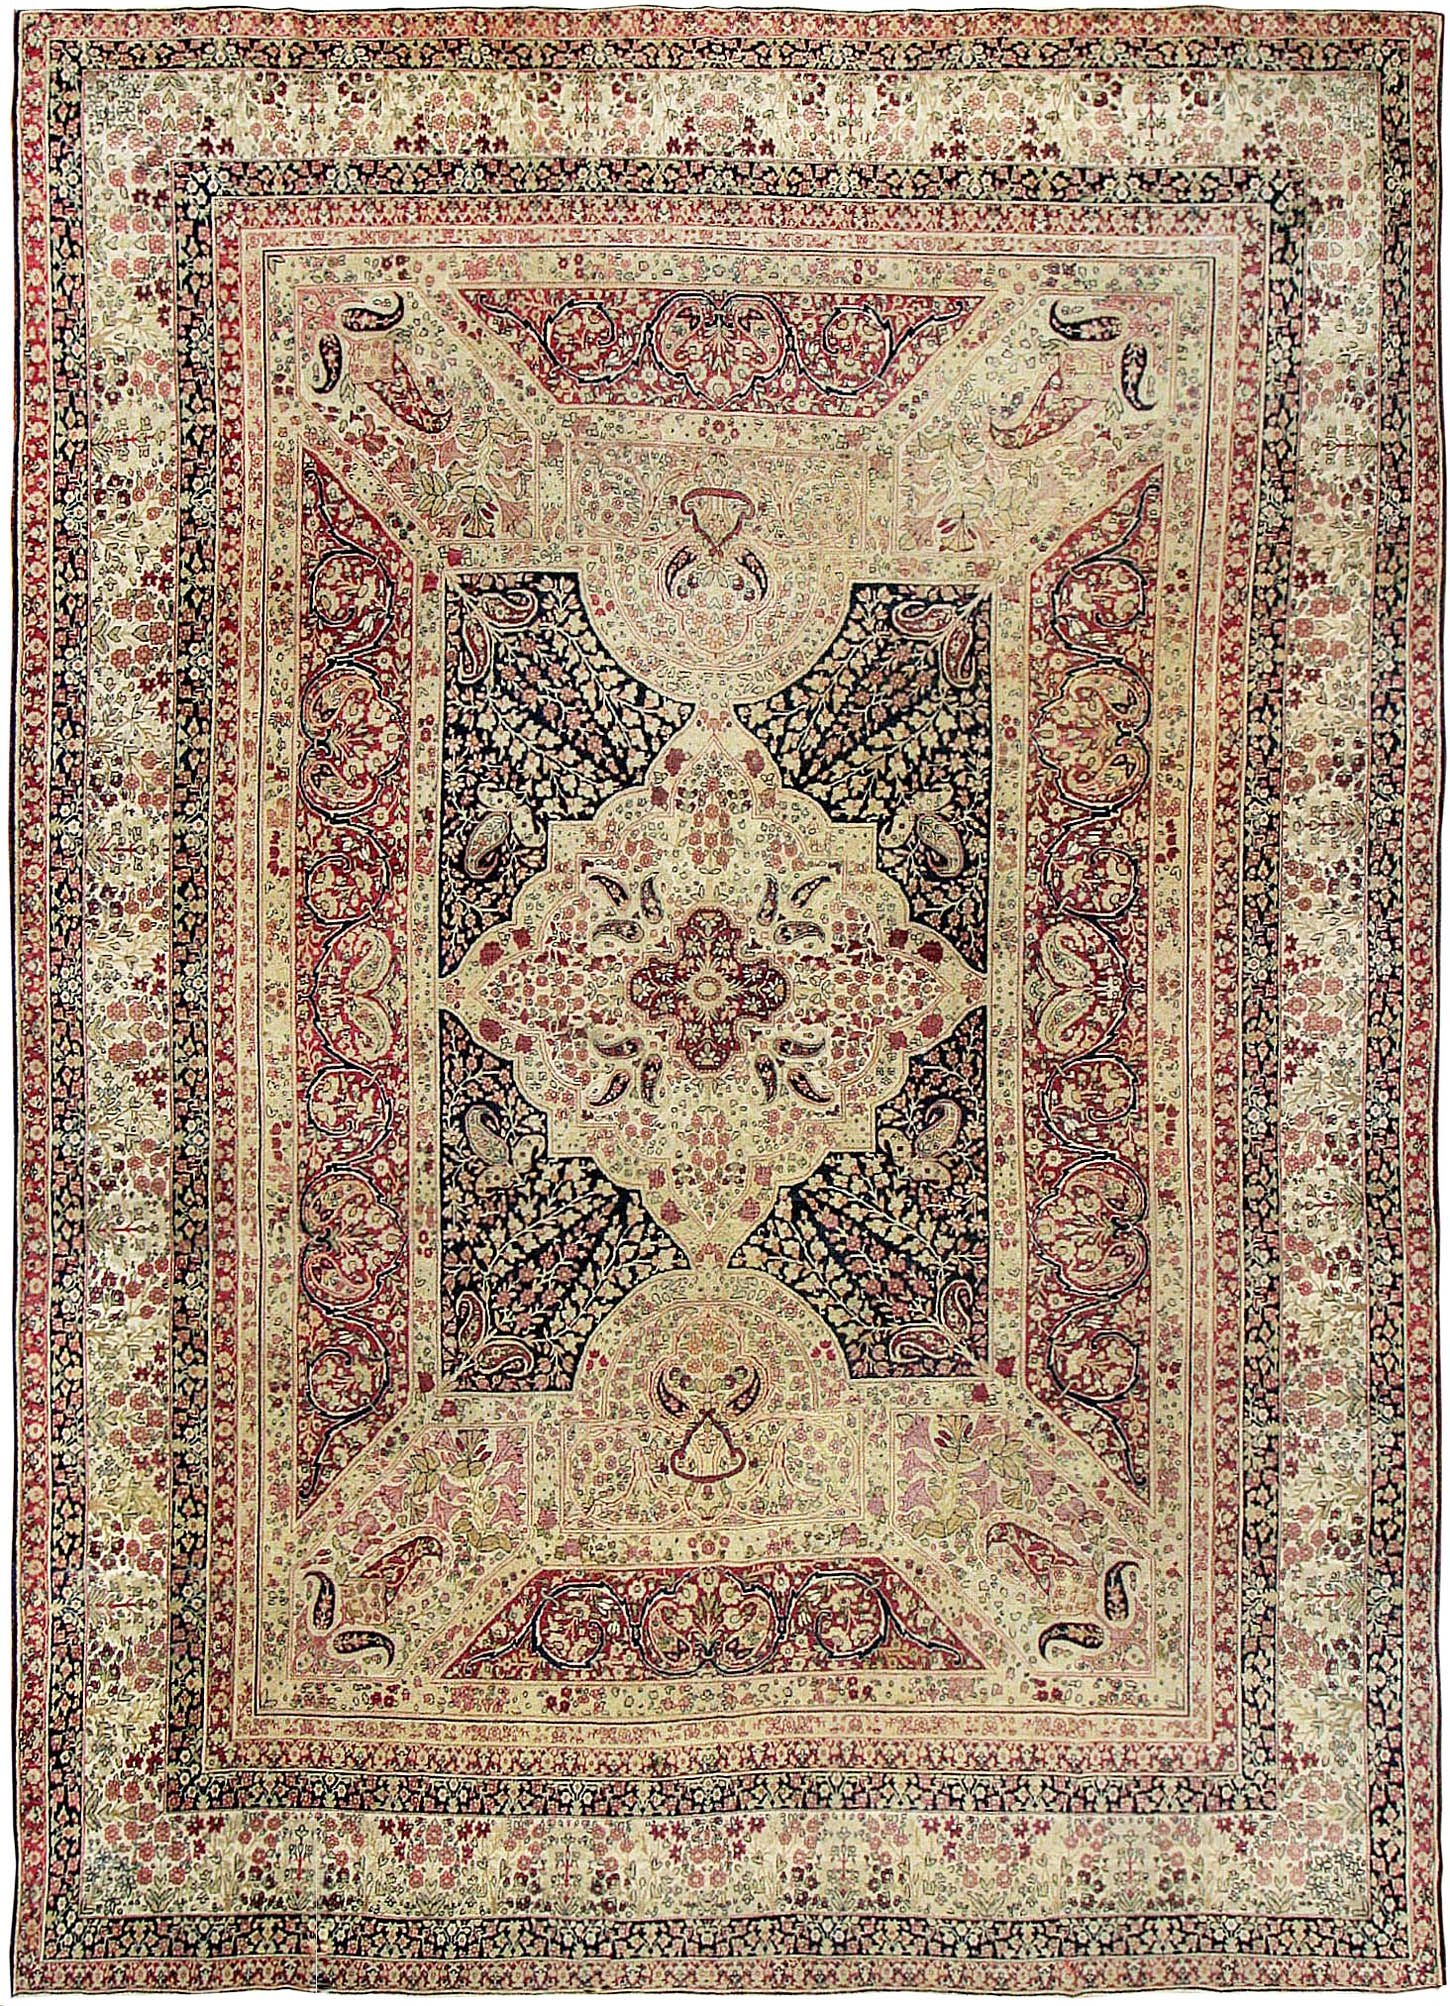 Antique Kerman Persian Rug 44391 Detail Large View By Nazmiyal